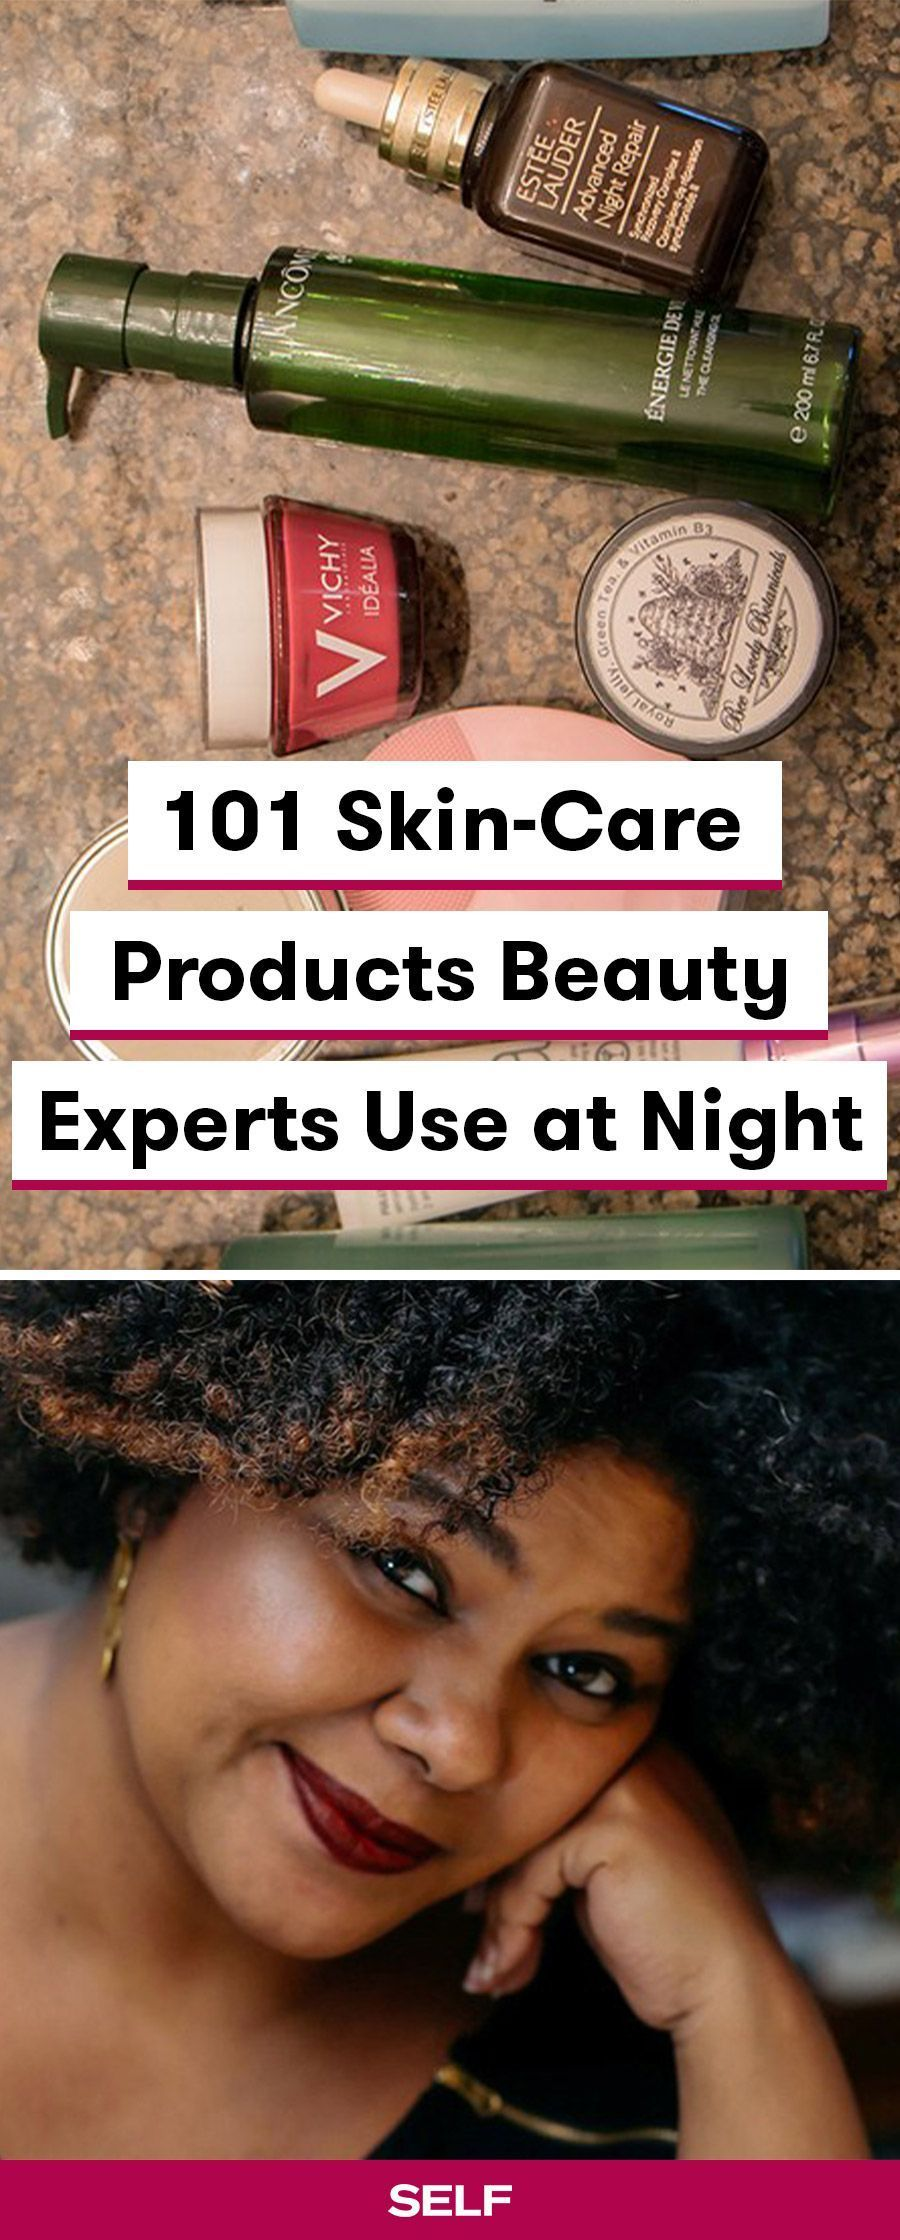 Everyone S Night Time Skin Care Routine Is And Should Be